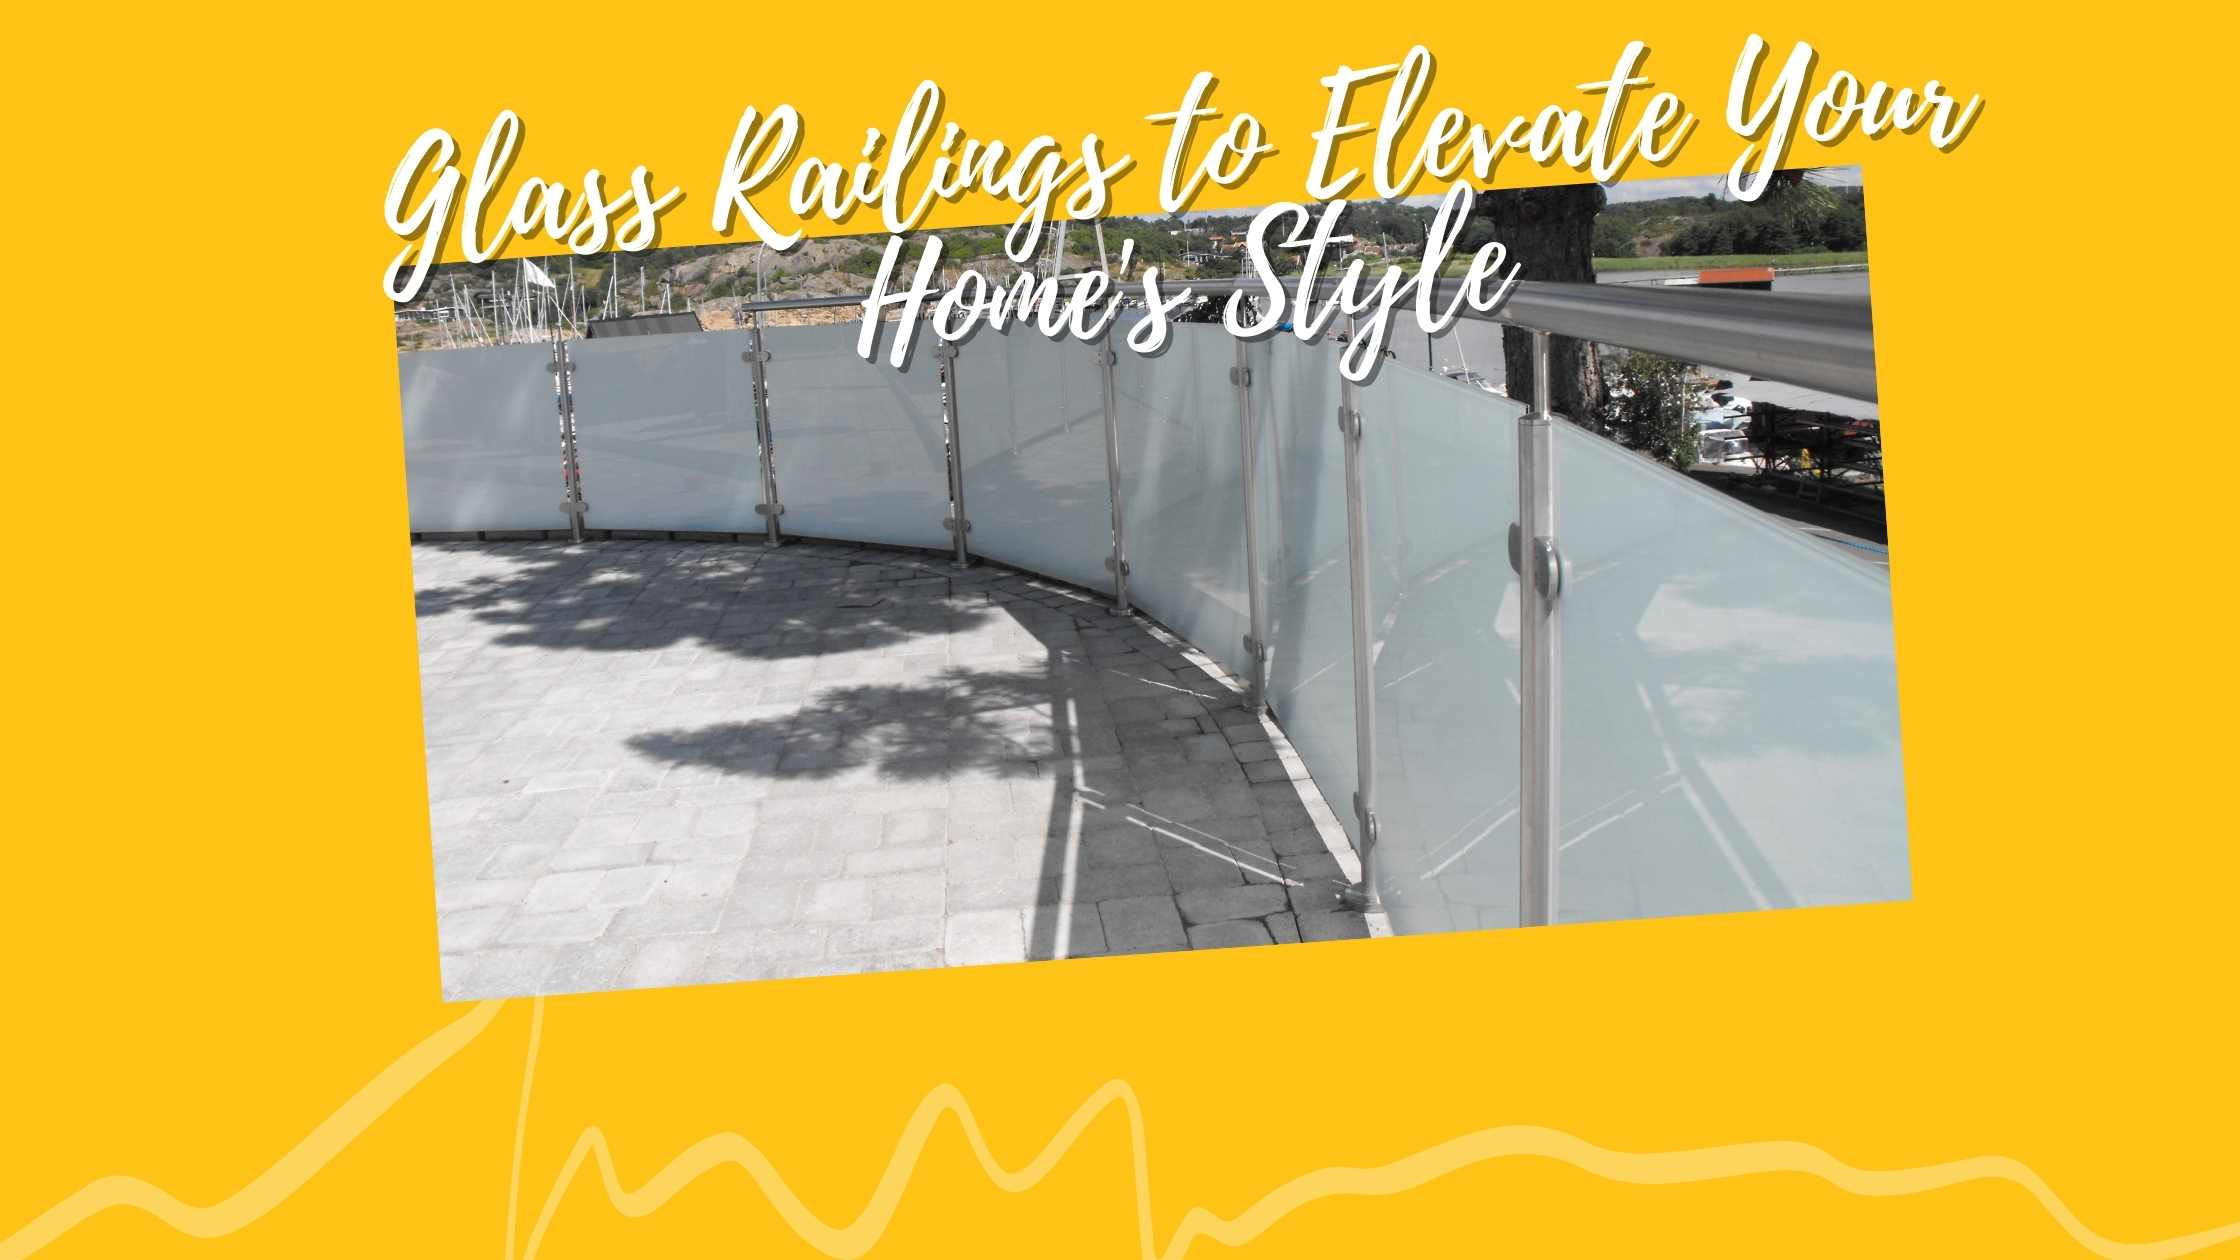 Glass Railings to Elevate Your Home's Style